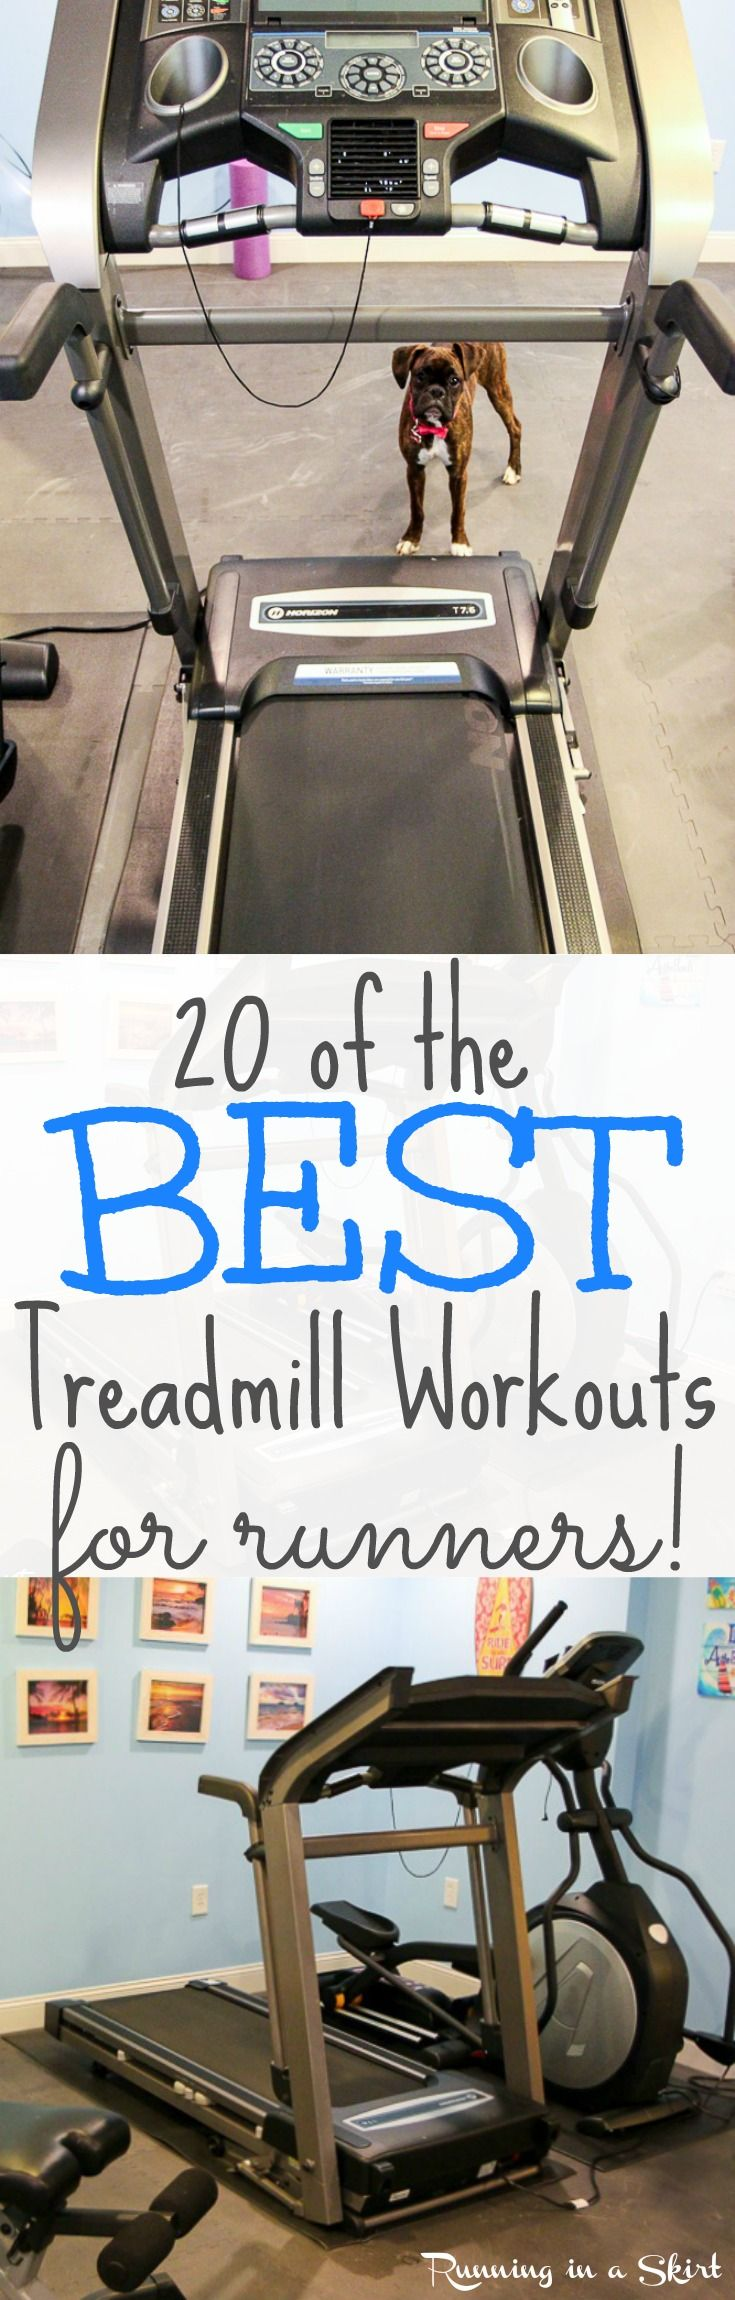 20 of the Best Treadmill Workouts for Runners... from beginner, intermediate to advanced! Great for making the time pass when you need / want to use the treadmill. All fun, creative and effective for your training! Get motivation and tips to make your next workout / cardio unique and different by doing one of these options!